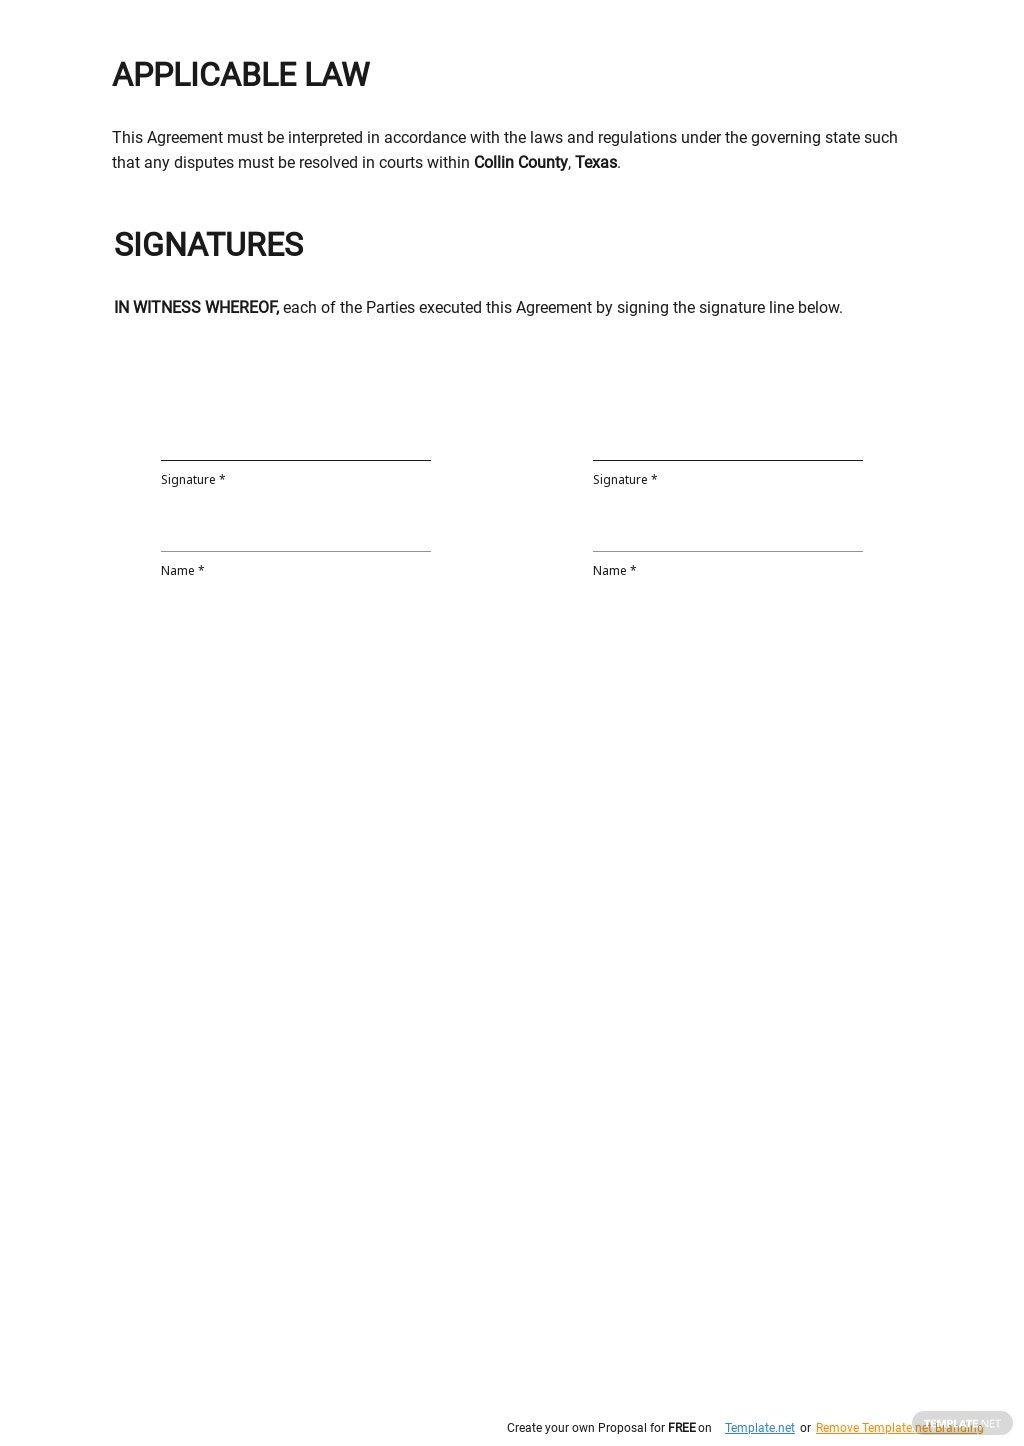 Real Estate Agent Referral Agreement Template 2.jpe